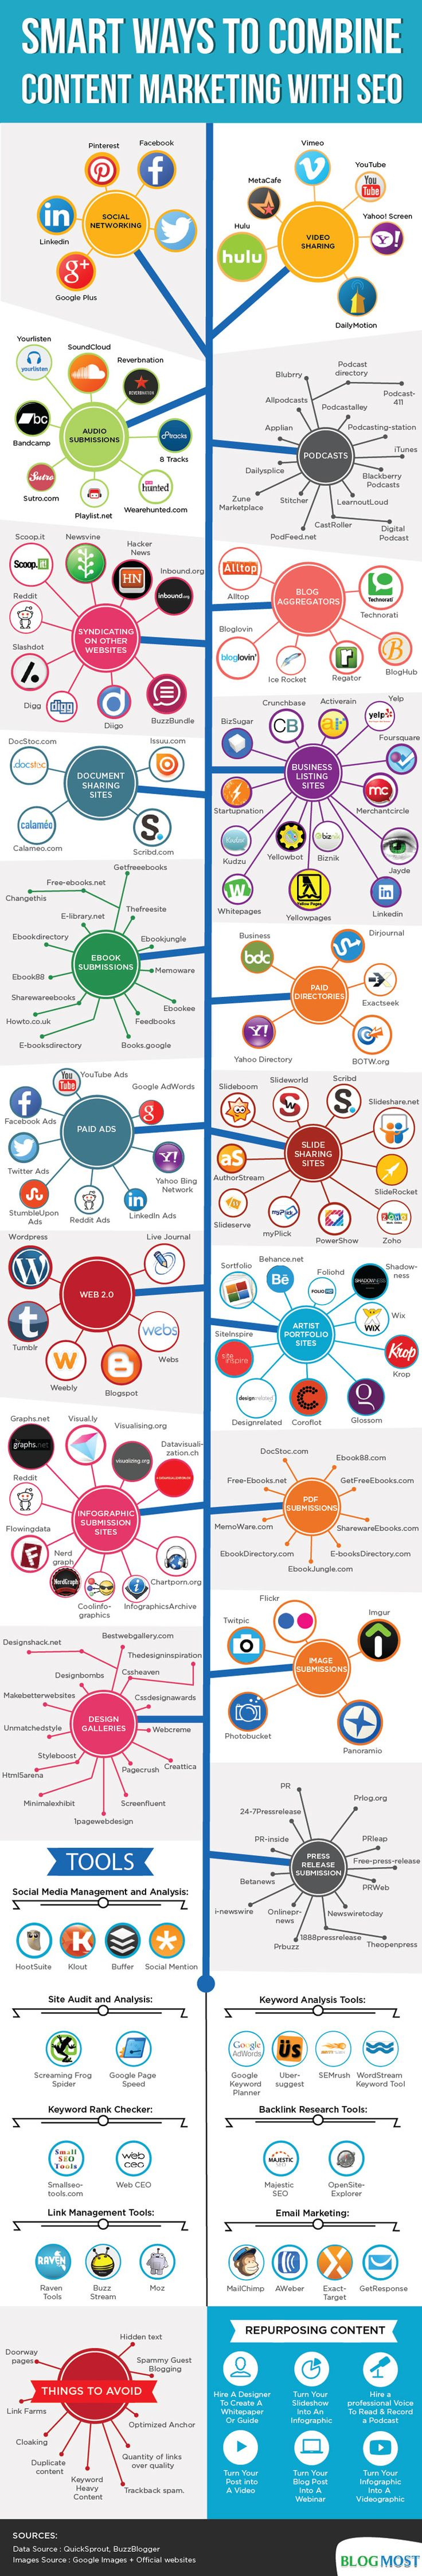 Combine Content Marketing with #SEO | #Infographic repinned by @Piktochart | Create yours at www.piktochart.com